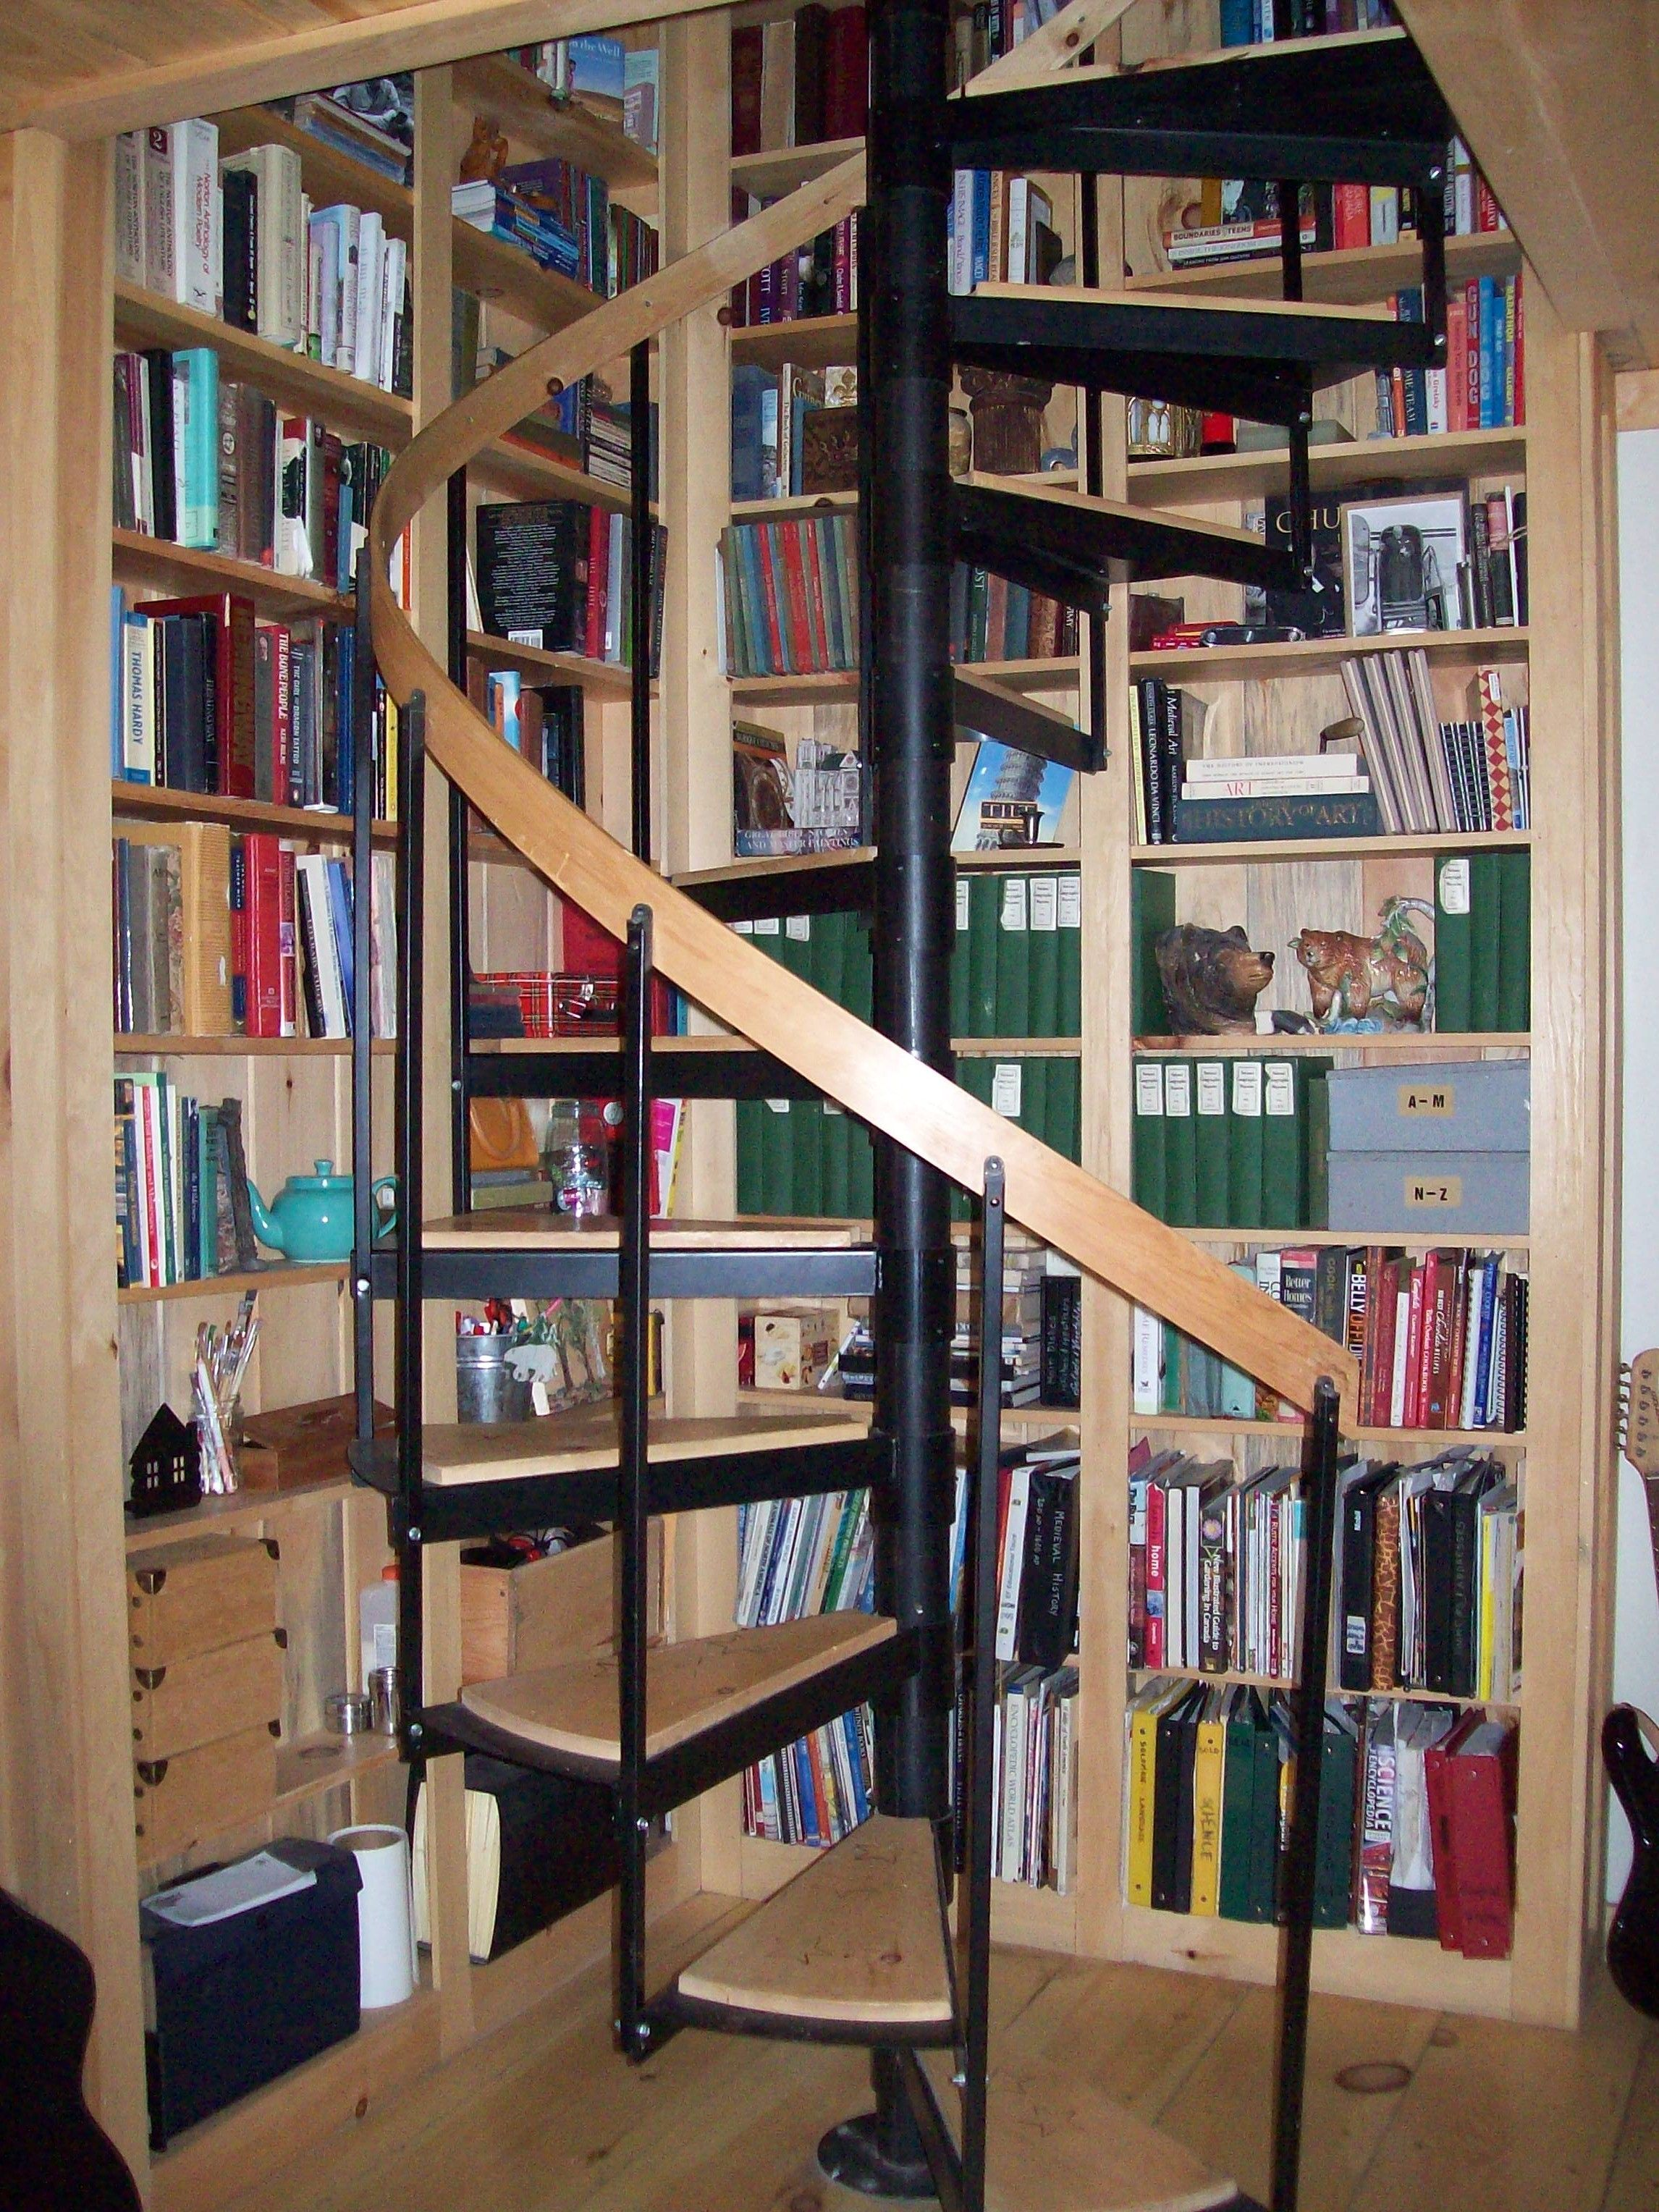 Bookcases Built In Behind Spiral Stairs Use Every Inch Of Space.does A Spiral  Stair Save Space More Than A Traditional Staircase?